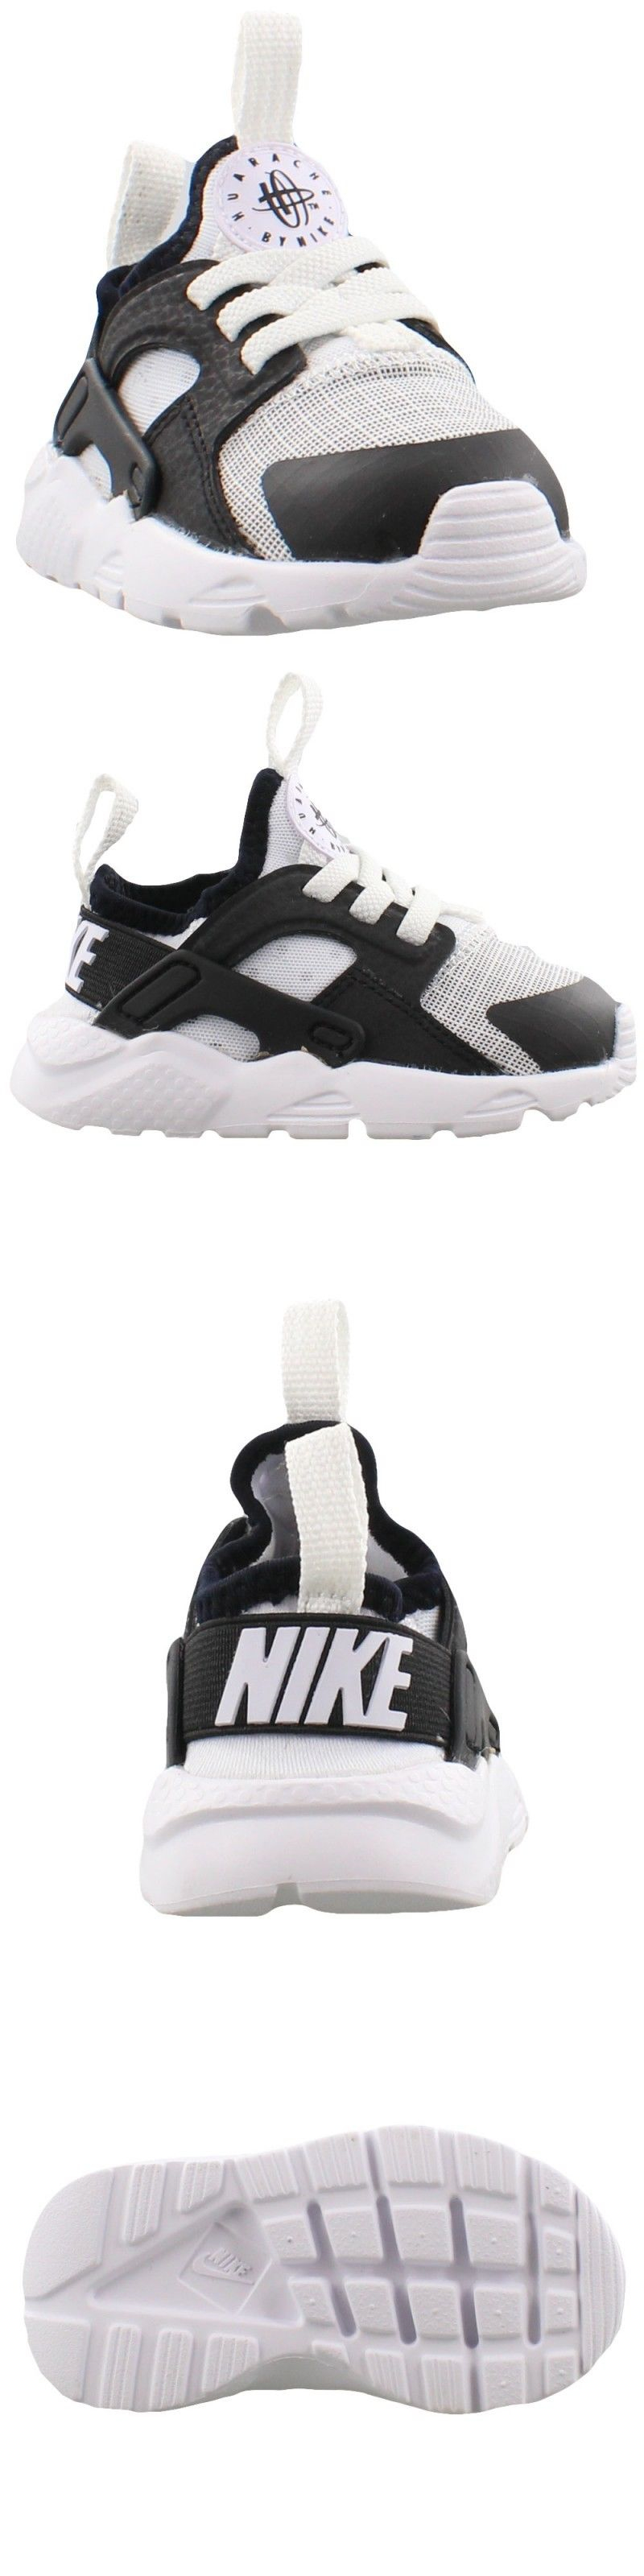 eeeda304555 Baby Shoes 147285: [859594-101] Nike Huarache Run Ultra Td Toddler  Anthracite Platinum Grey 4C-10C -> BUY IT NOW ONLY: $49.99 on eBay!